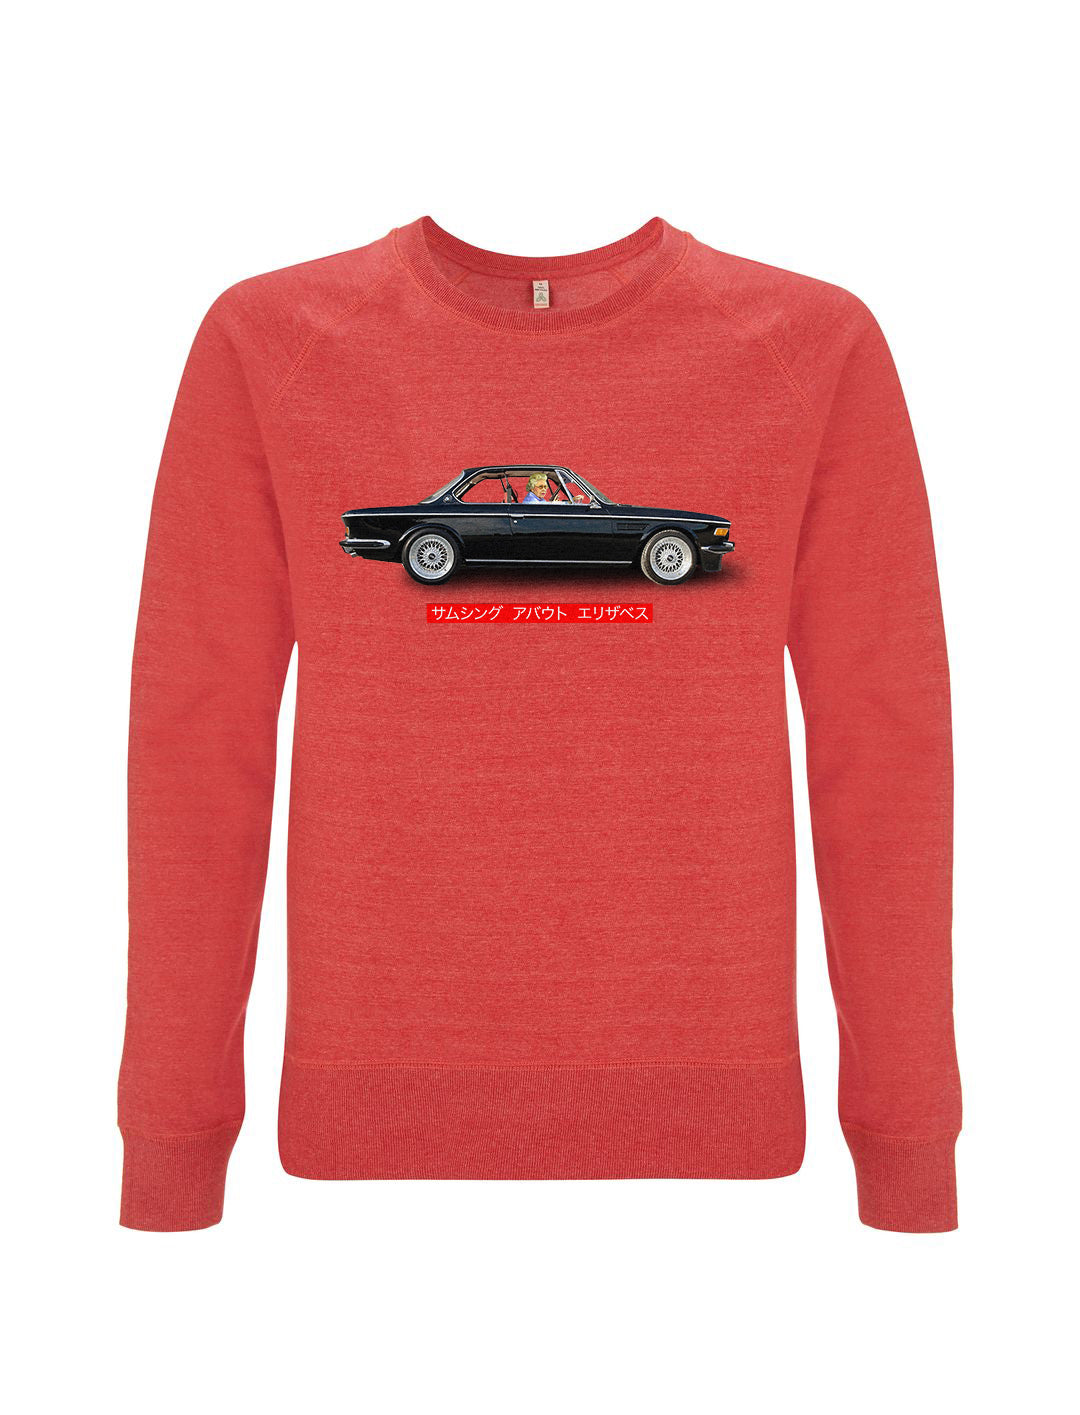 Queen Assassination - Melange Red Sweatshirt